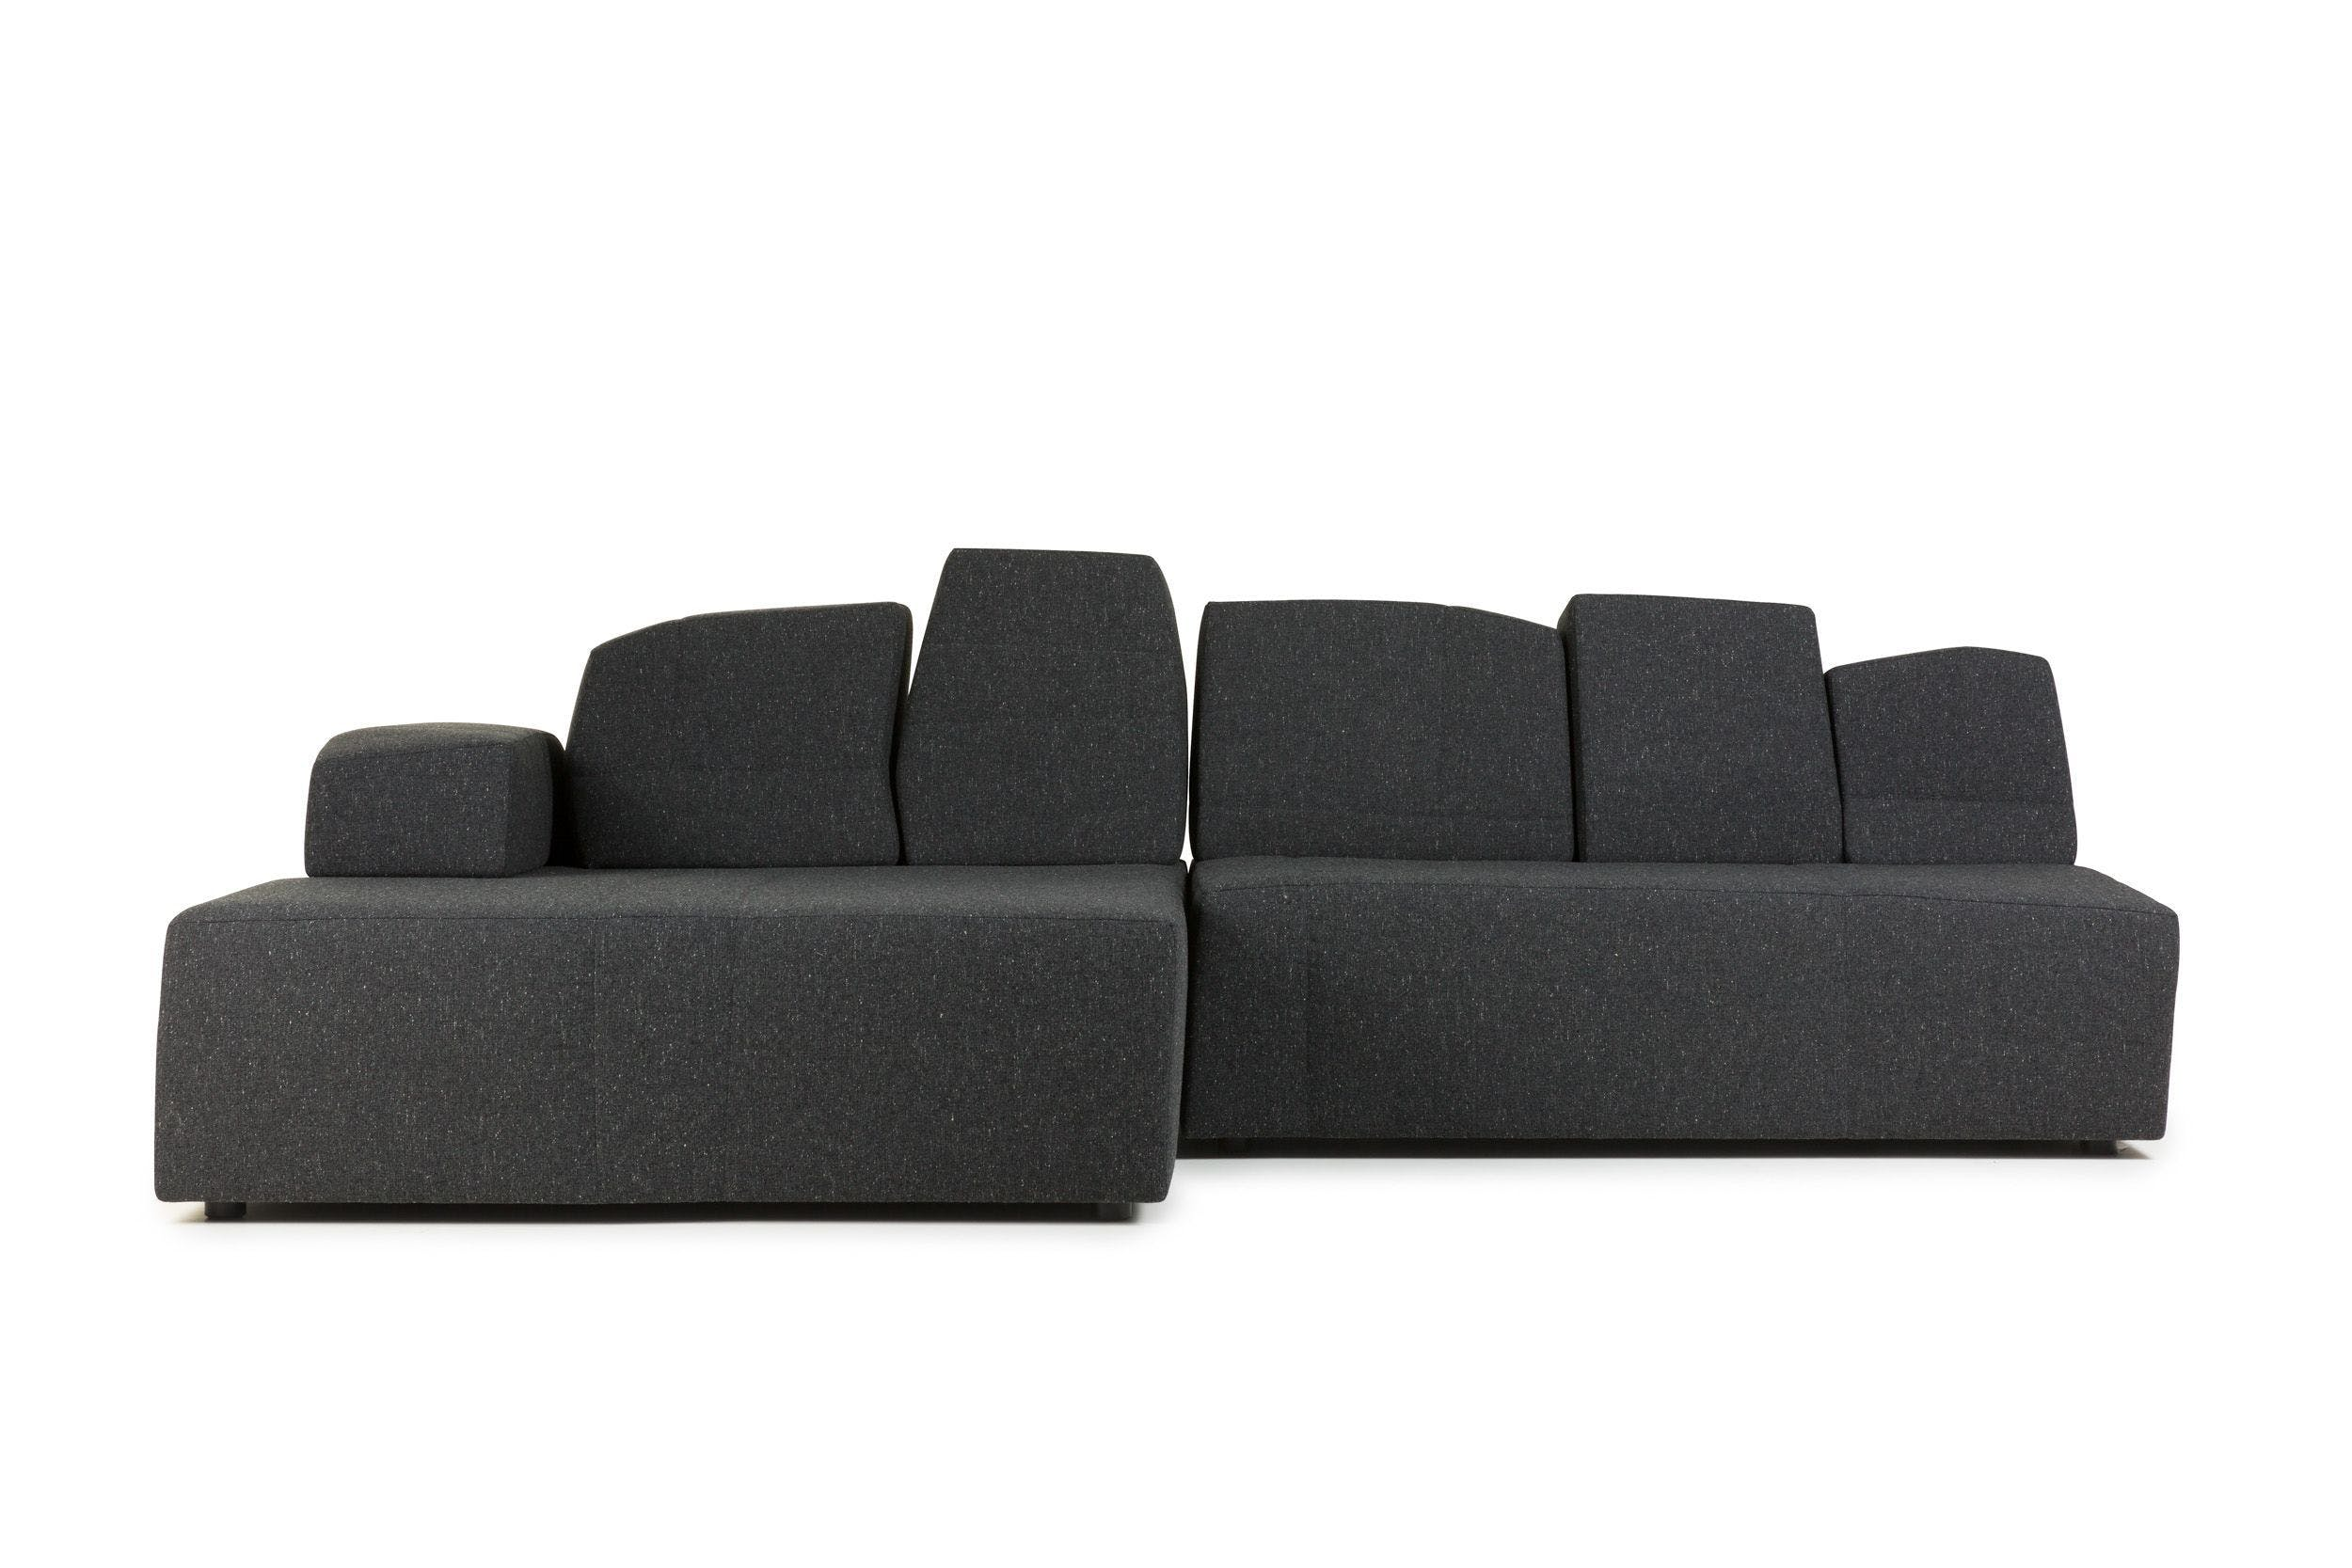 Something Like This Sofa Solis Suit Front 1 Moooi Web